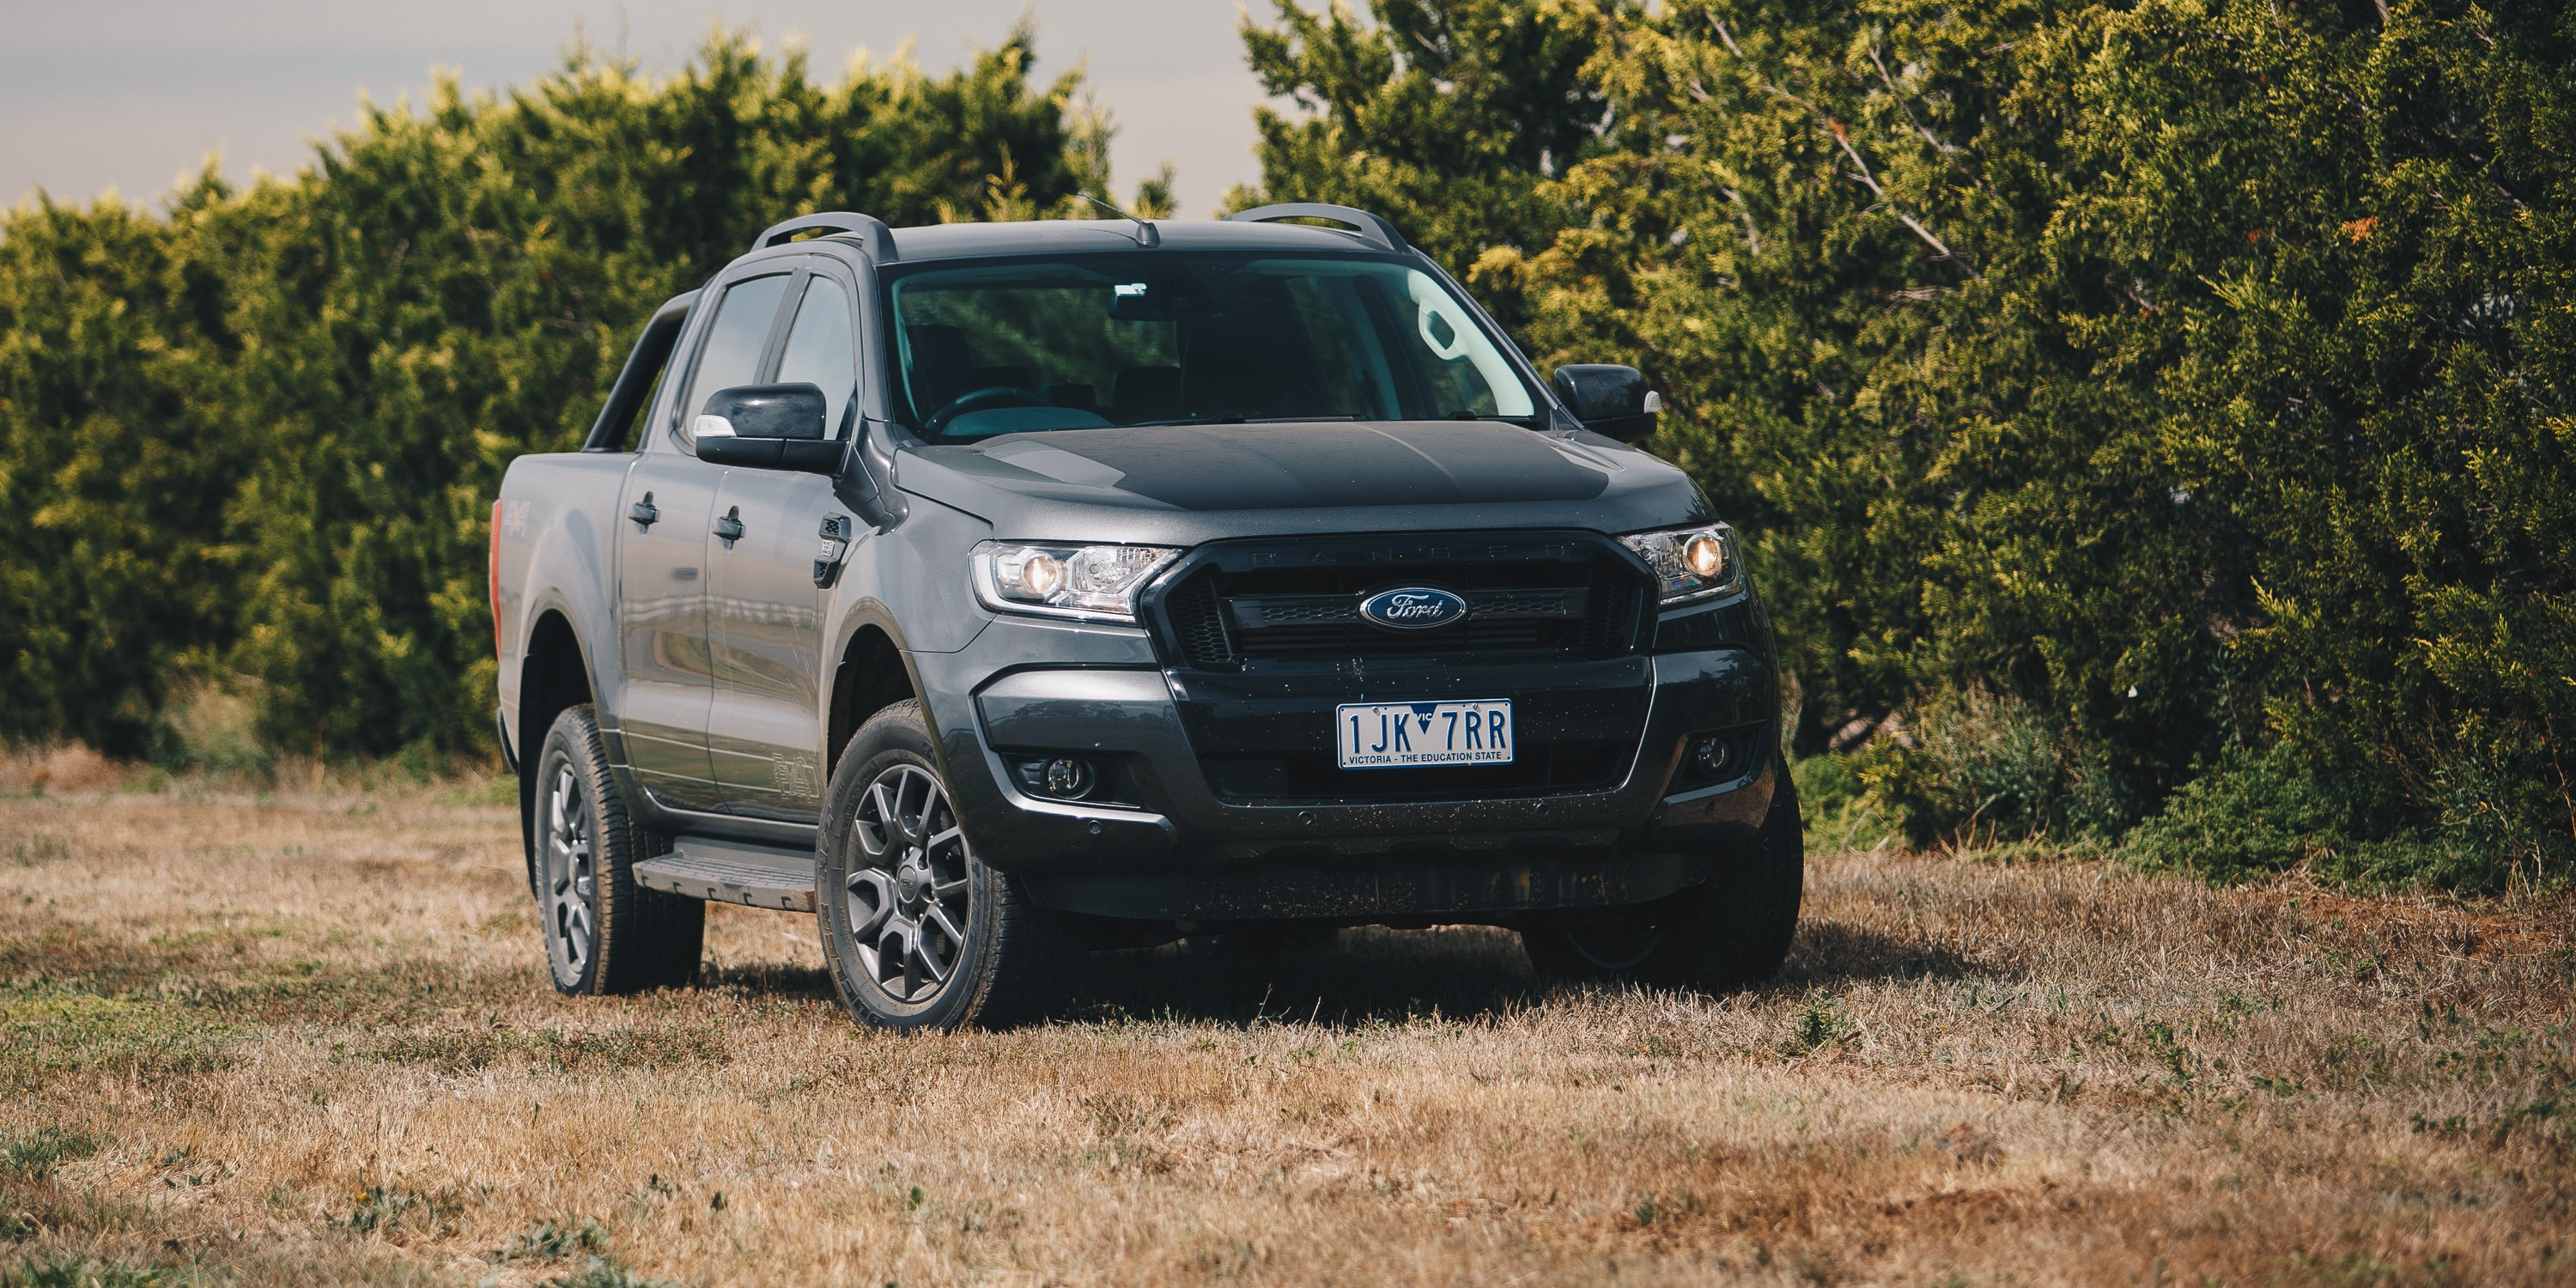 Holden Colorado Dual Cab Ute Lx Canopy For Ute 4x4